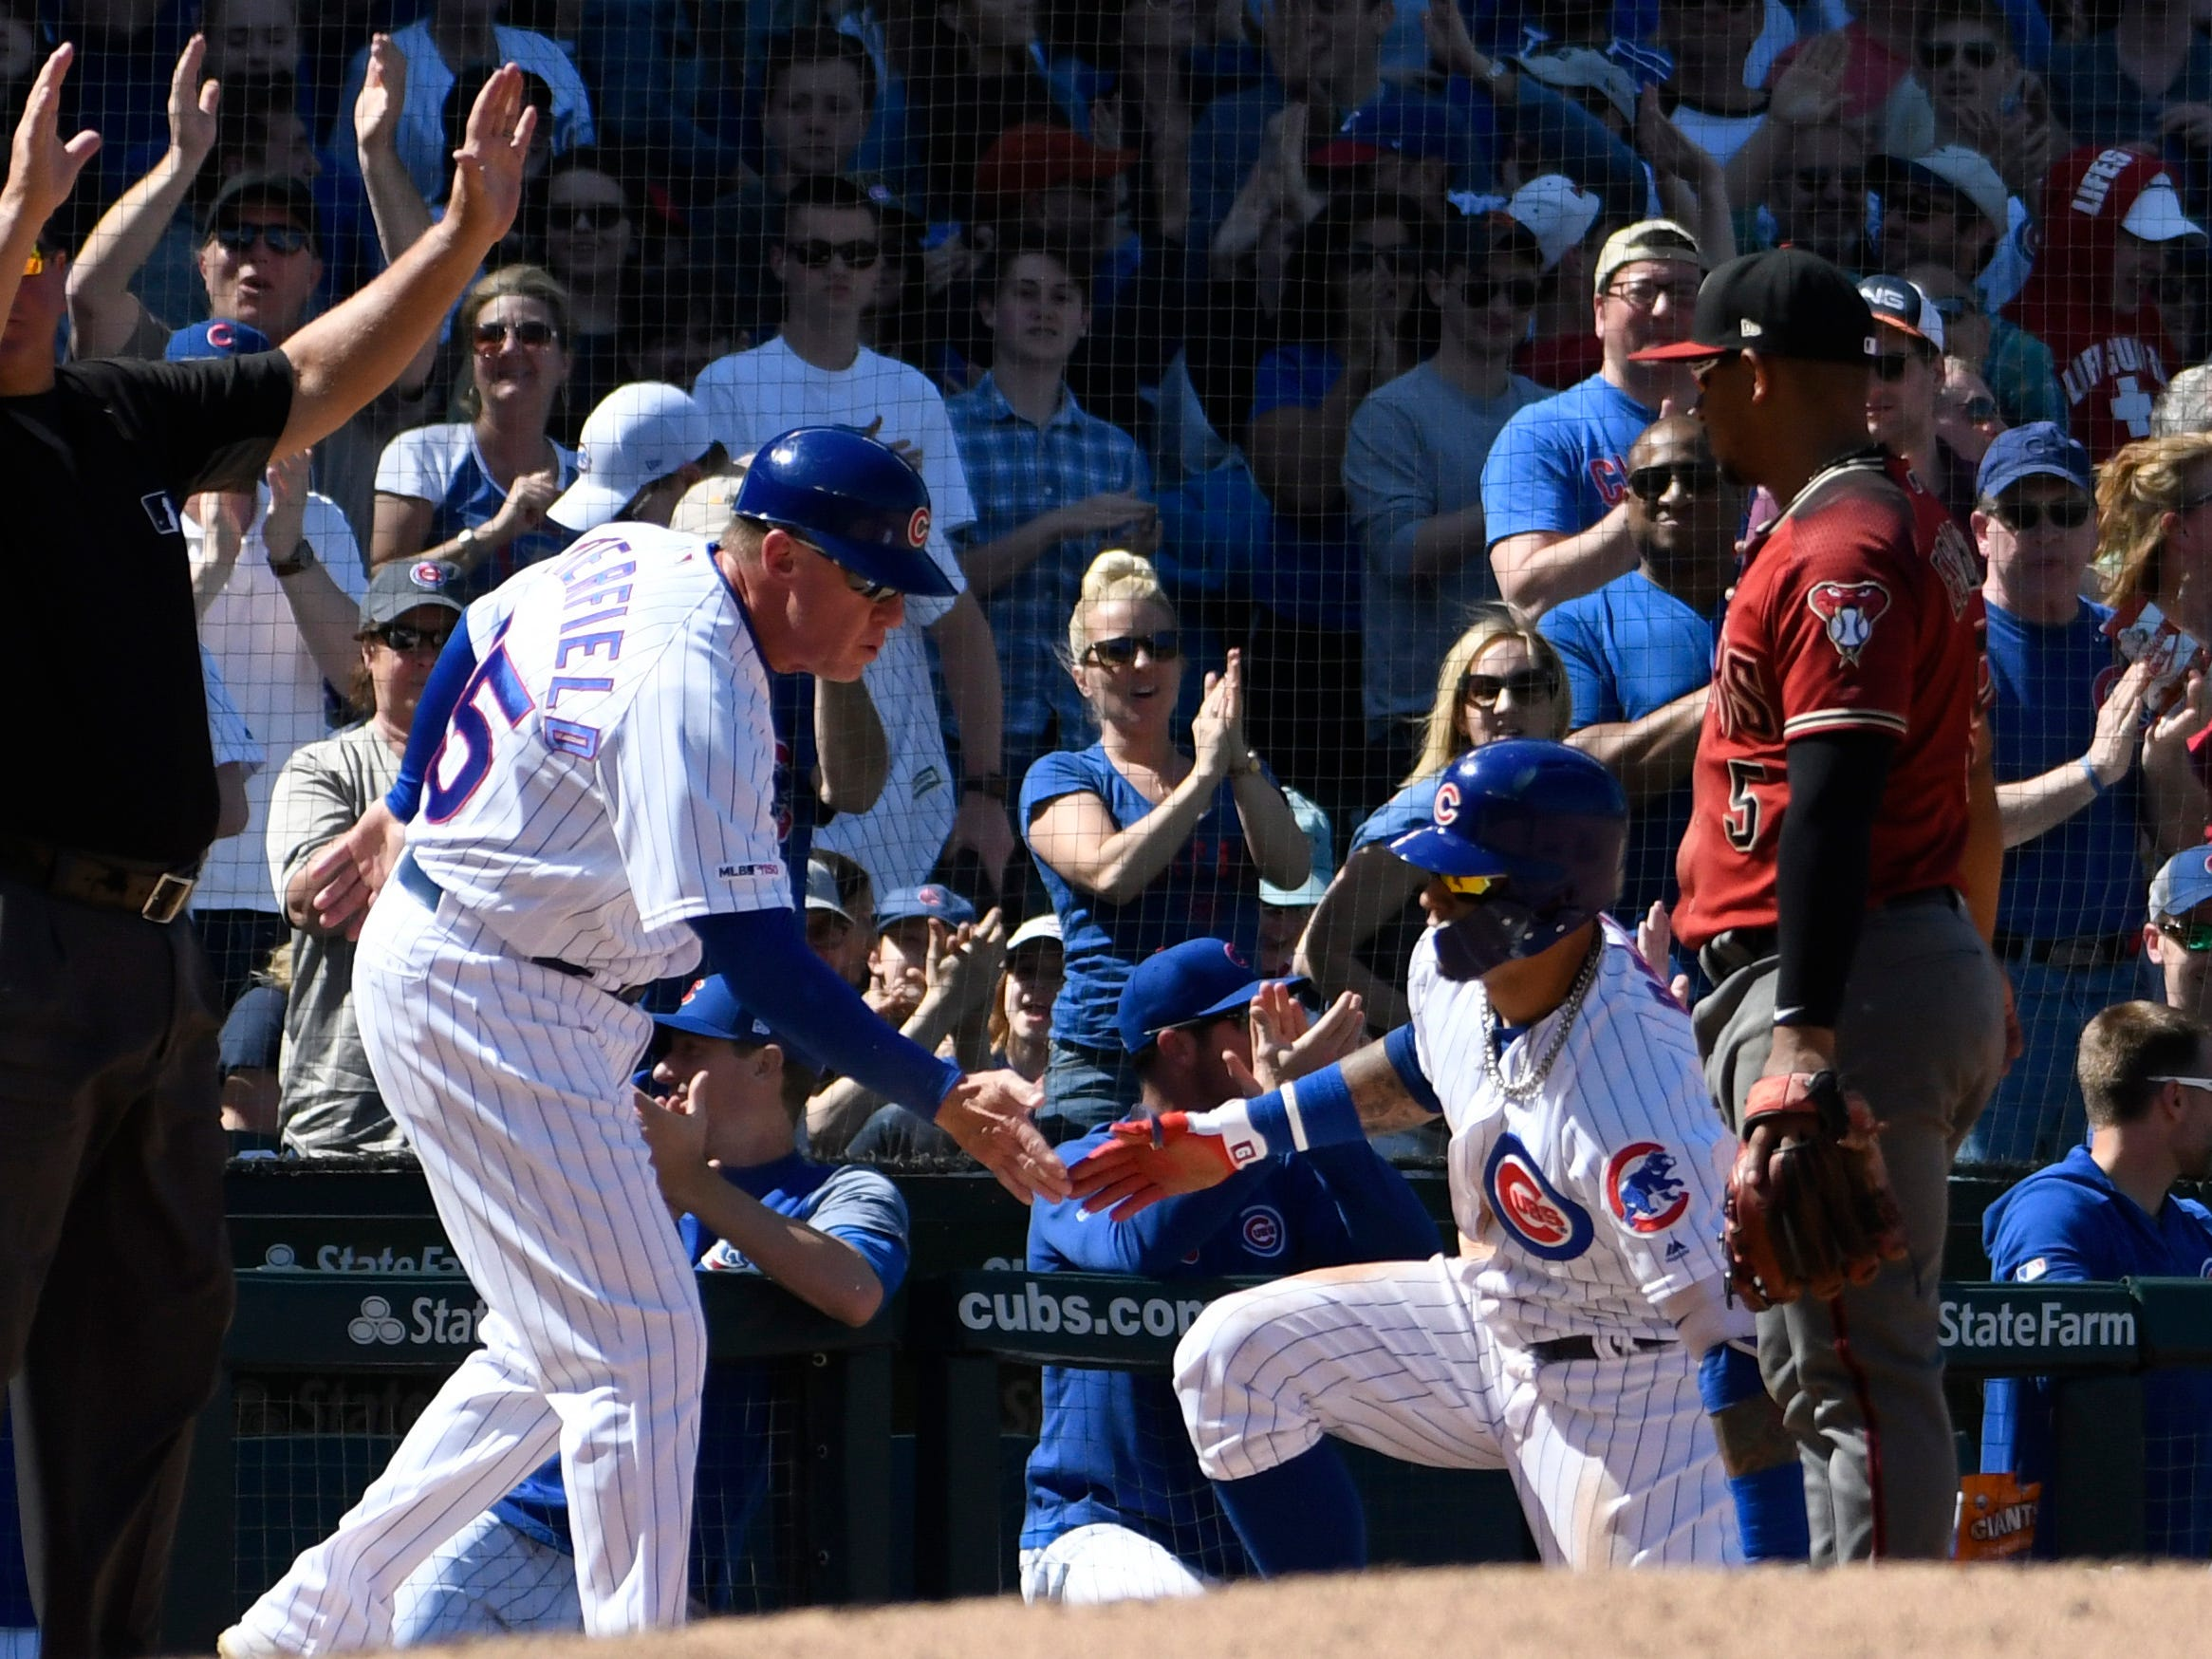 Apr 21, 2019; Chicago, IL, USA; Chicago Cubs shortstop Javier Baez (right) is greeted at third base by third base coach Brian Butterfield (55) after hitting a one run triple against the Arizona Diamondbacks at Wrigley Field.